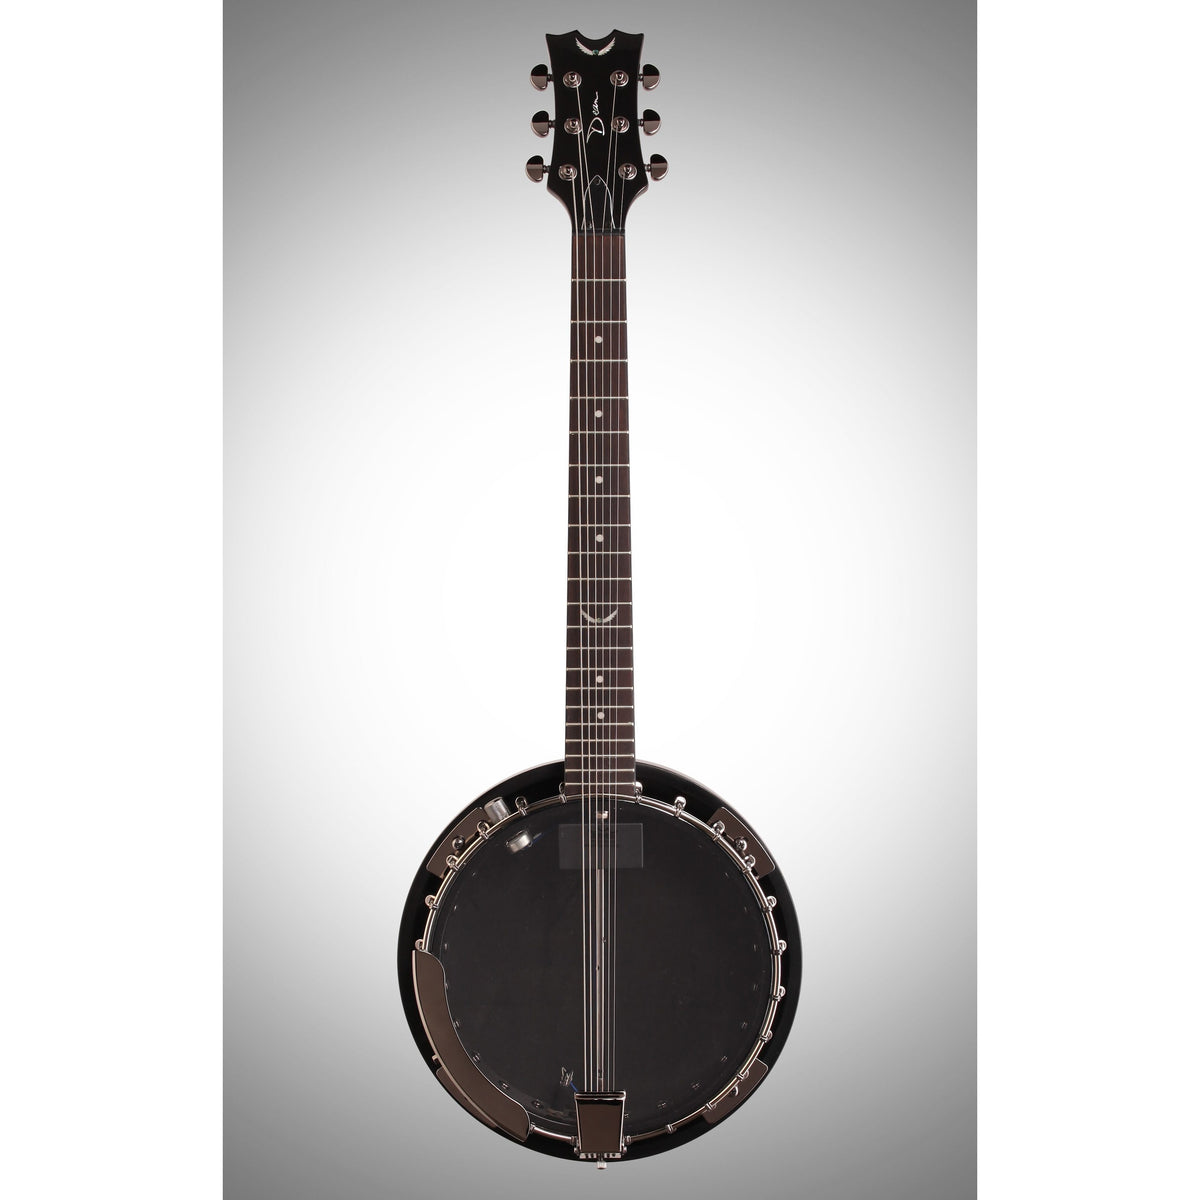 Dean Backwoods 6 Electric Banjo with Pickup, Black Chrome